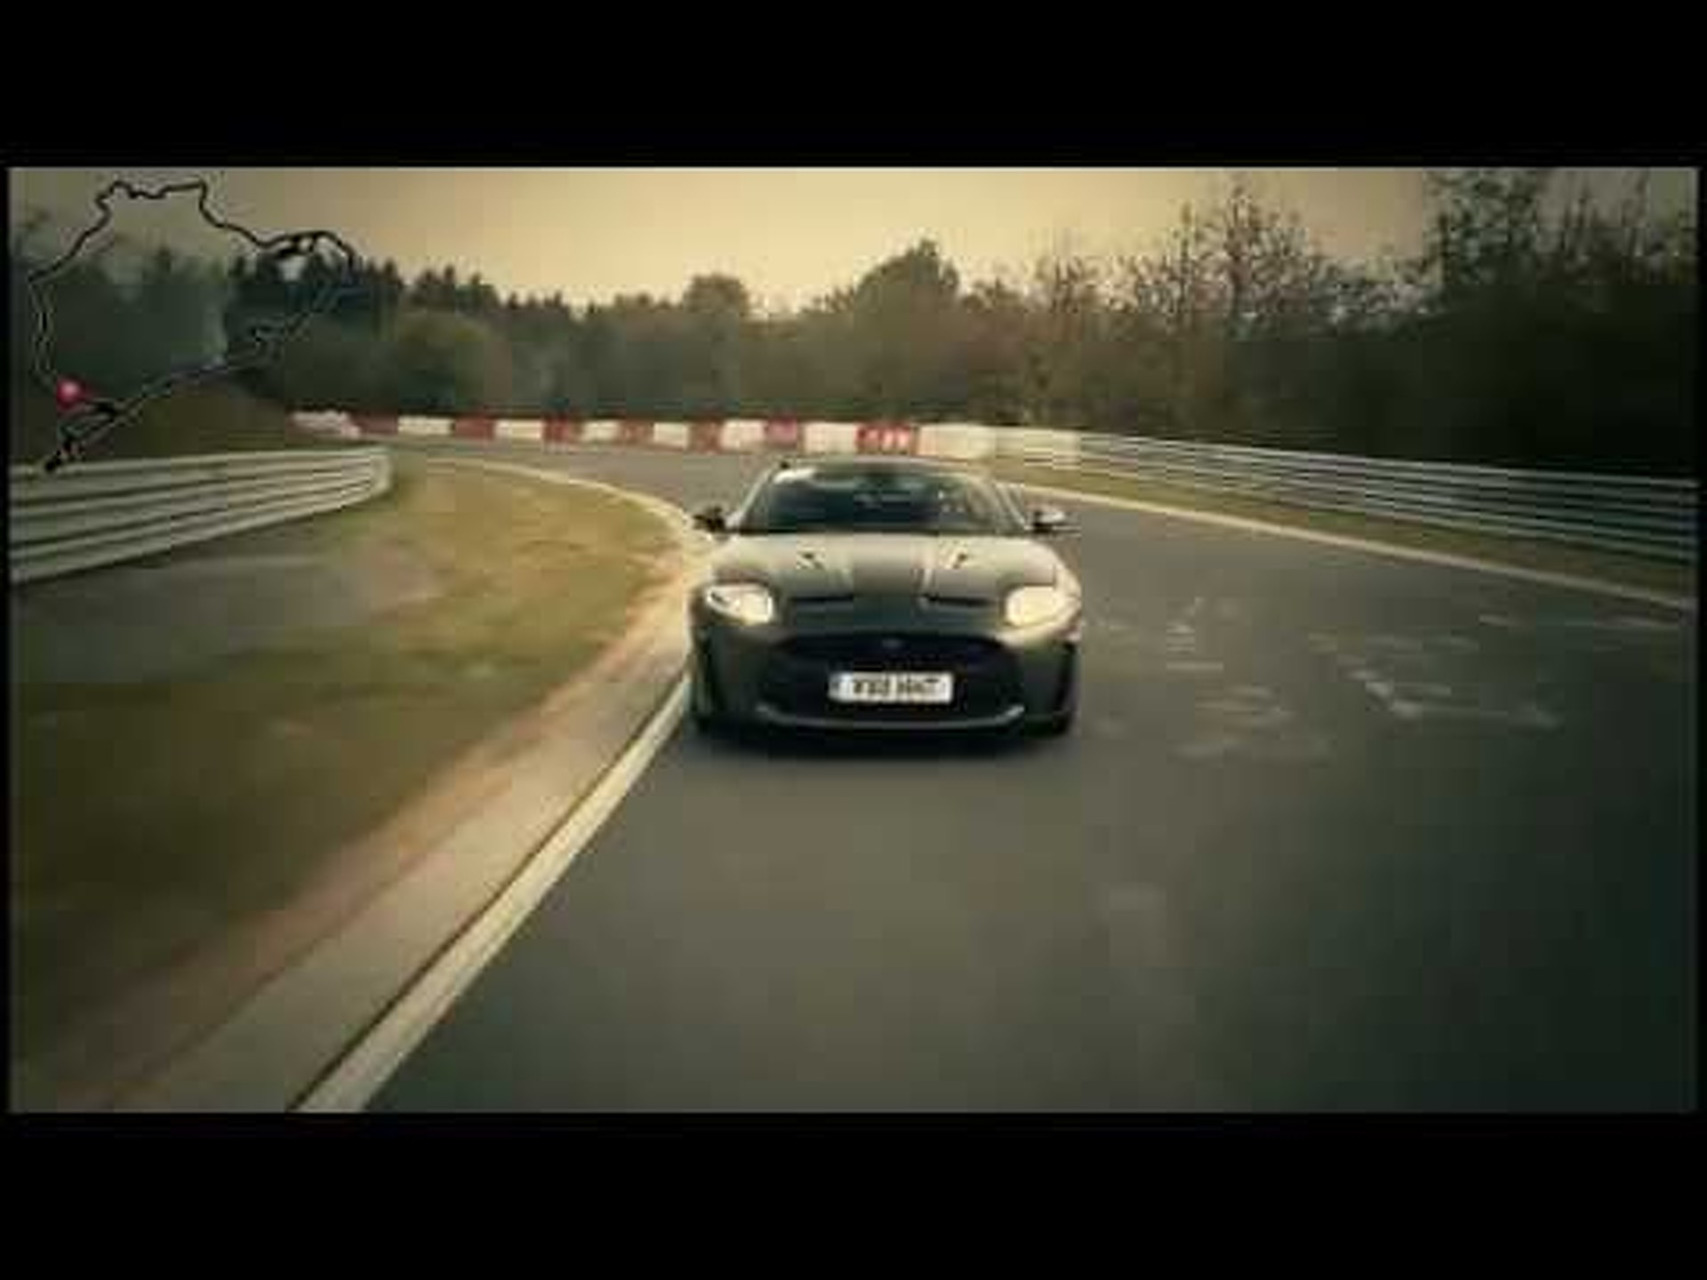 2012 Jaguar XKR-S Convertible on the Nurburgring